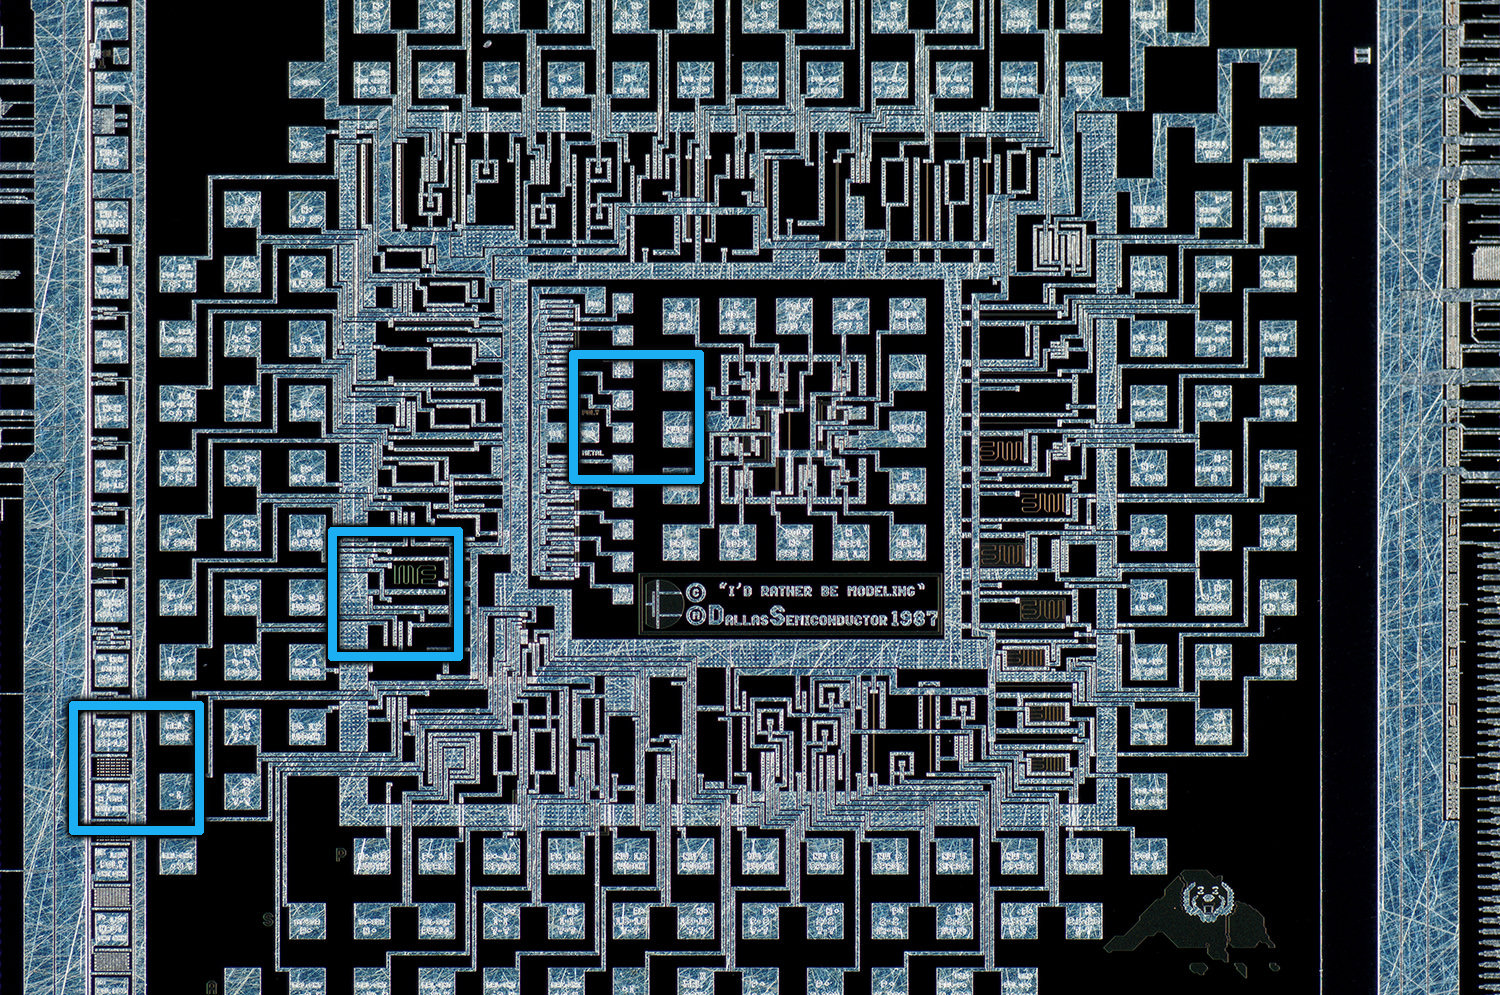 Silicon-wafer-at-5x-Closeuphotography-Robert-OToole-Photography.jpg